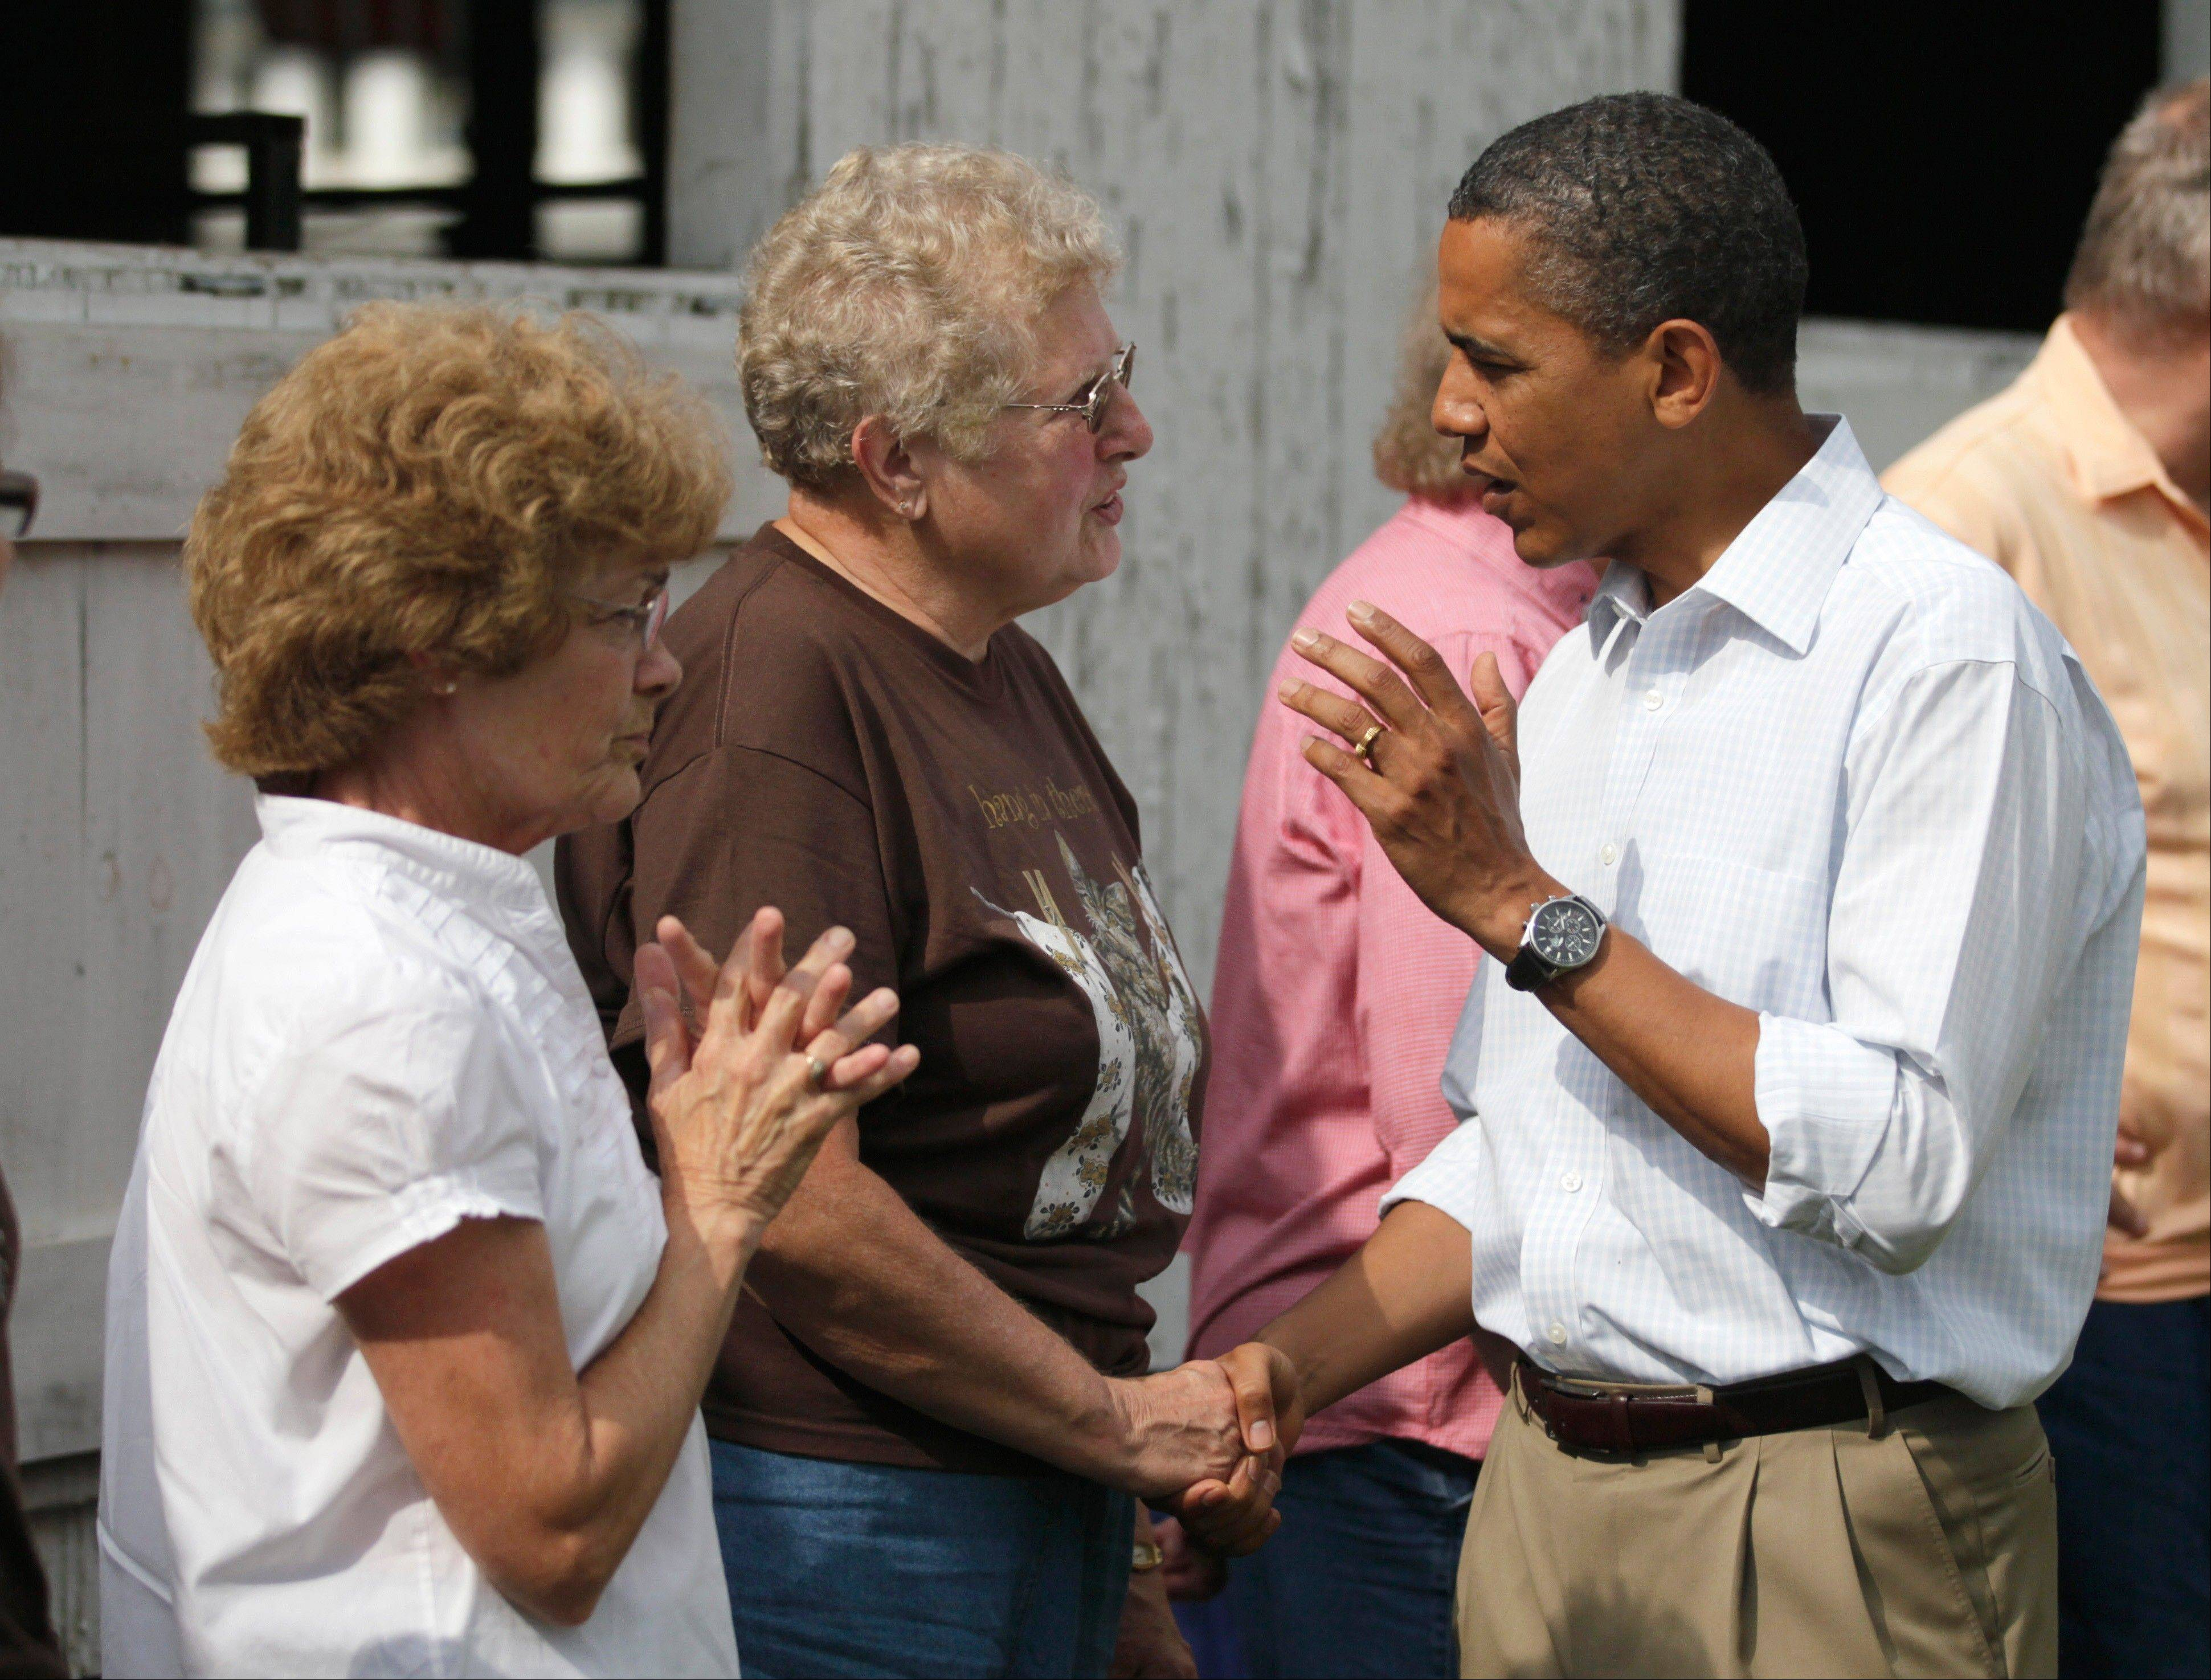 President Barack Obama visits with Norma Haan, 68, center at the Whiteside County Fair, Wednesday, Aug. 17, 2011, in Morrison, Ill.